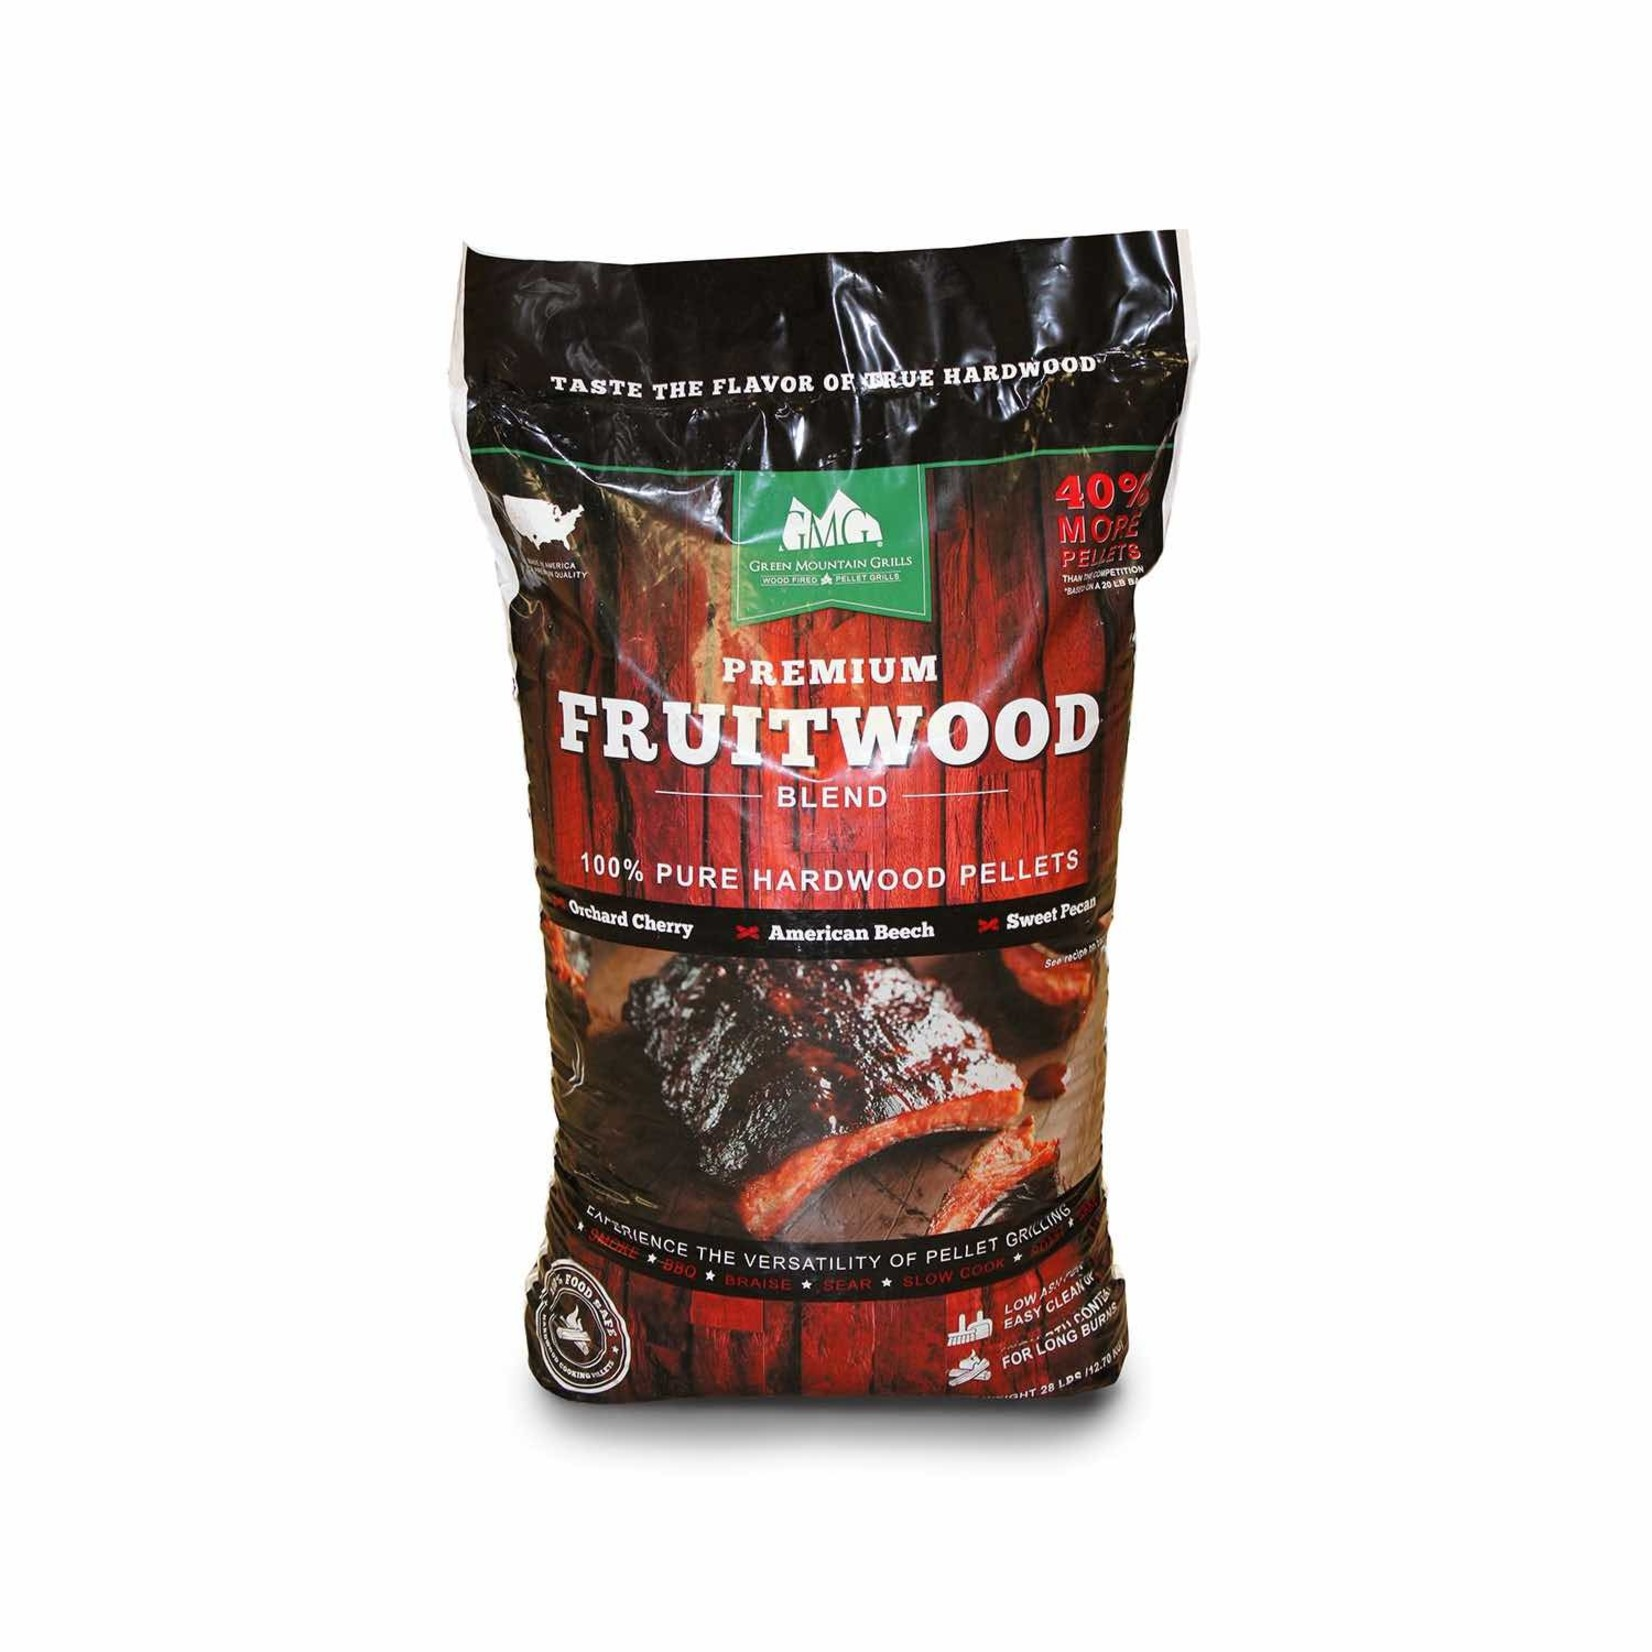 Green Mountain Grill GMG barbecue Pellets Fruitwood Blend 12.7 kg